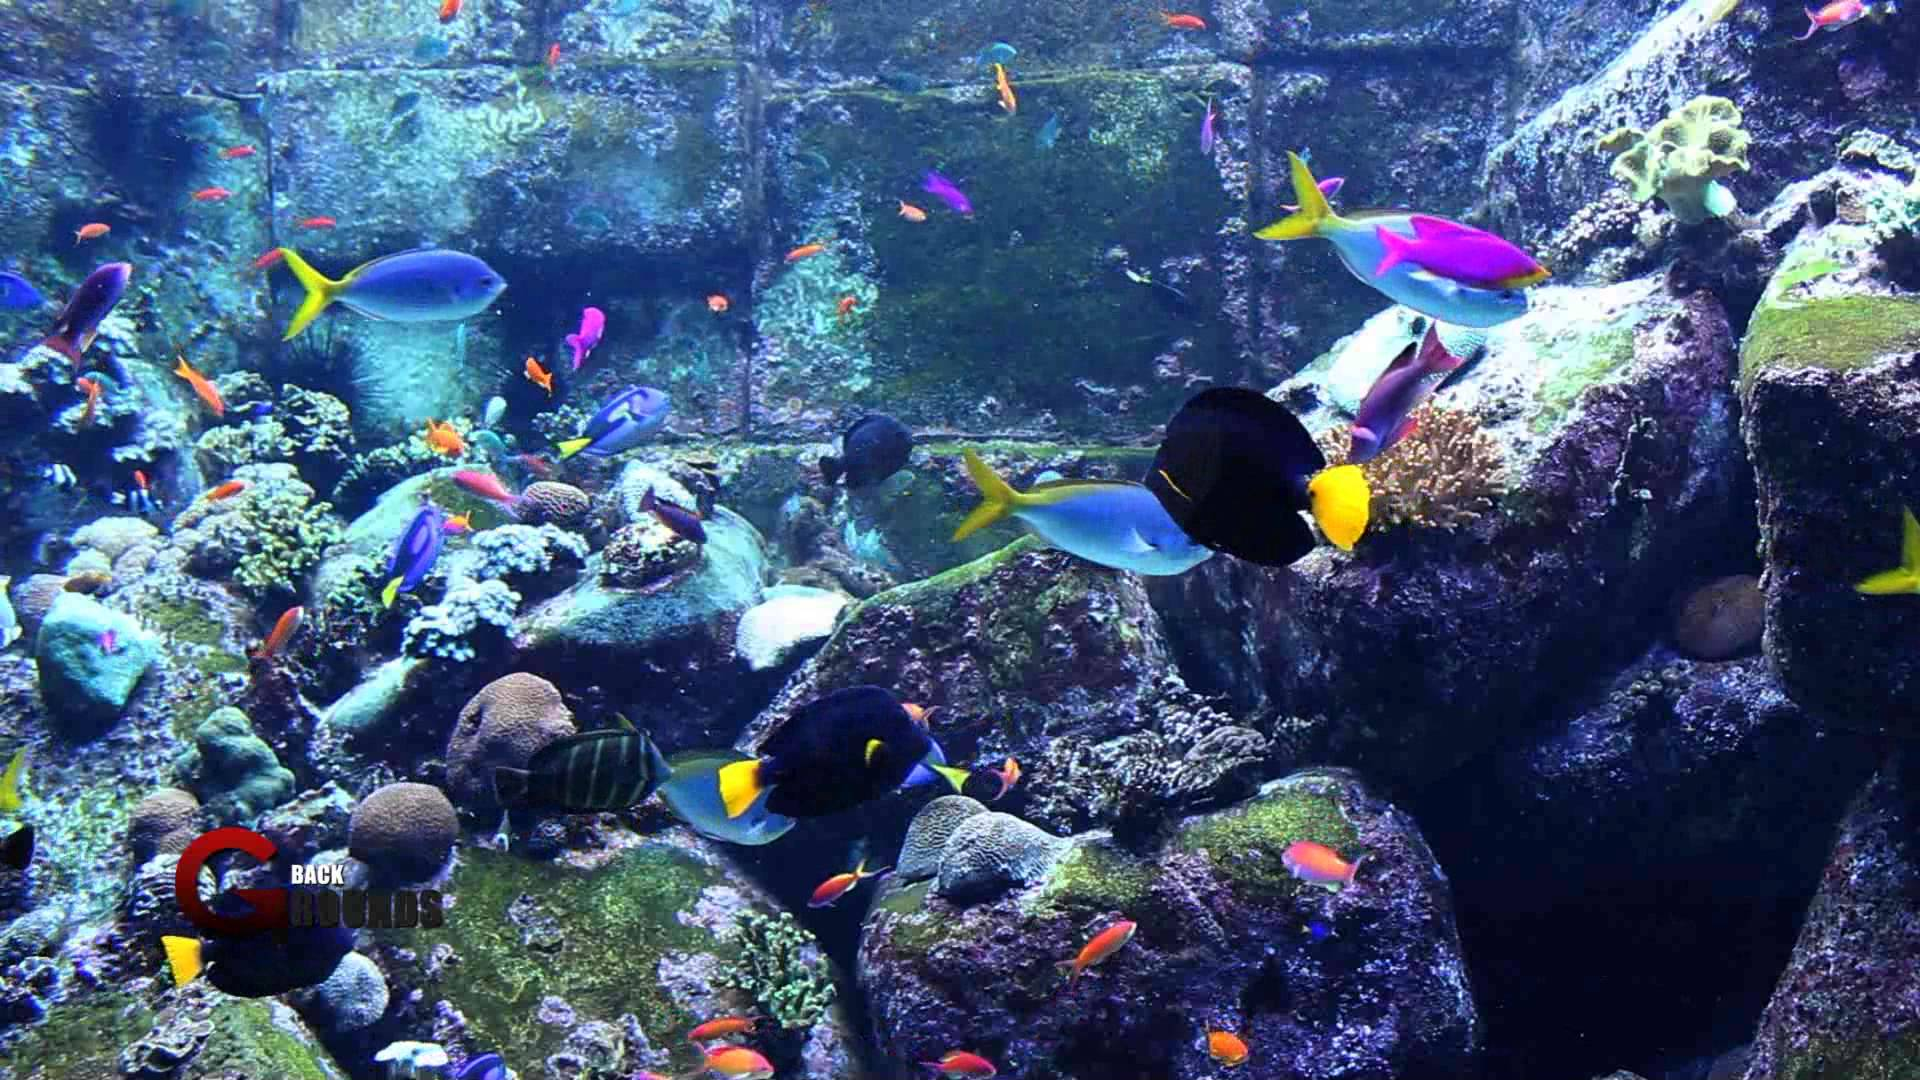 aquarium hd wallpaper - photo #24